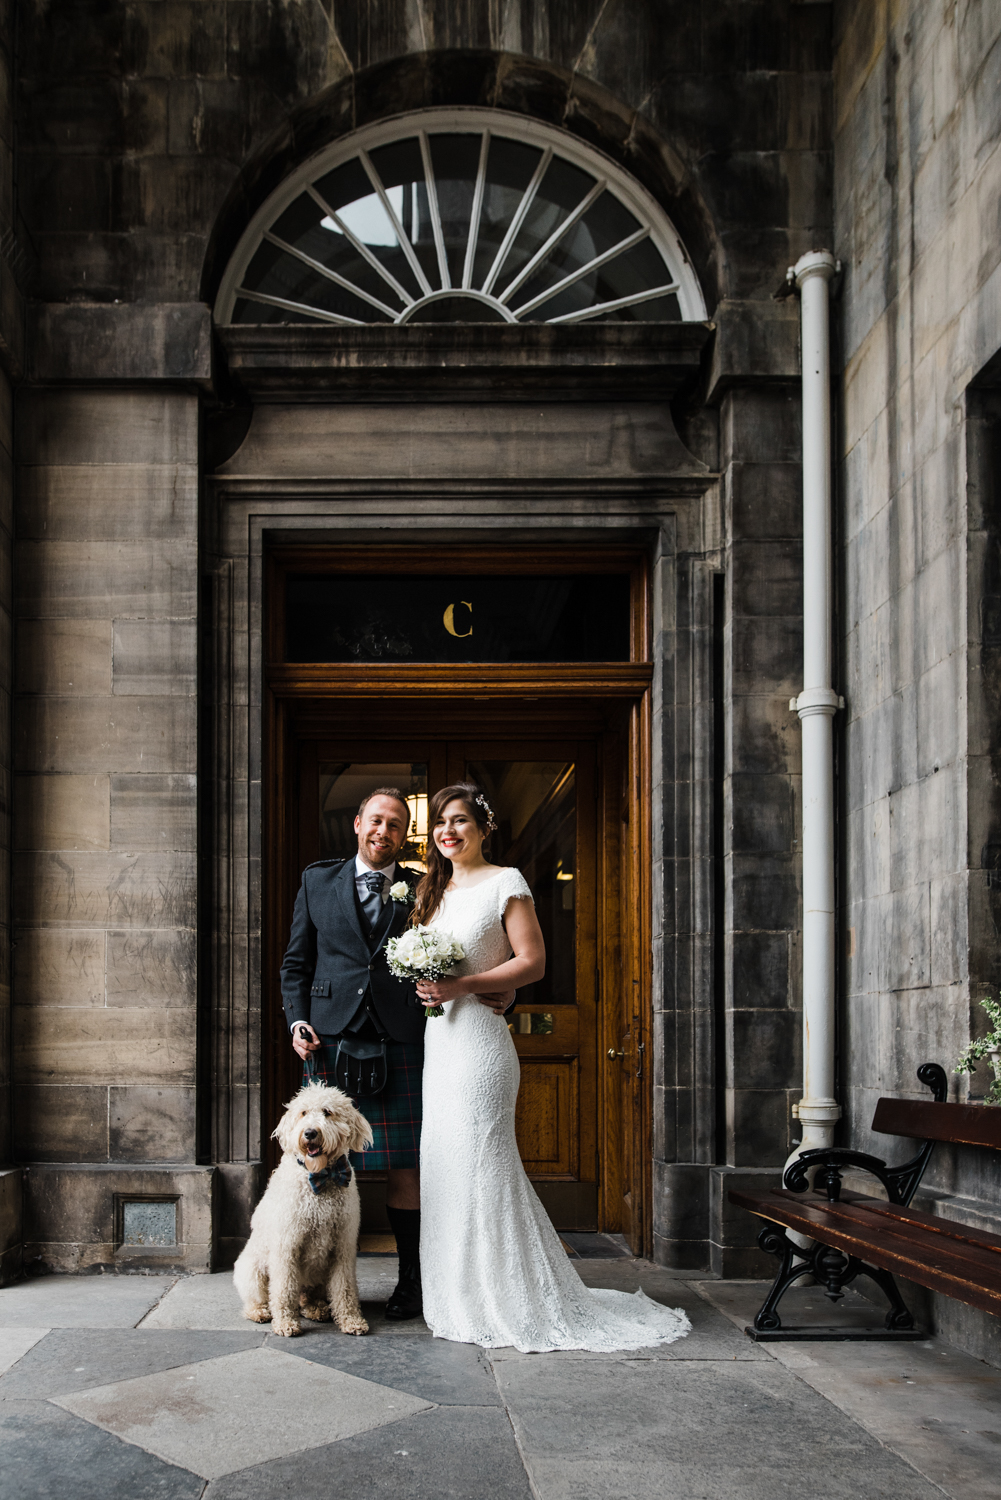 Bride and Groom with Labradoodle dog